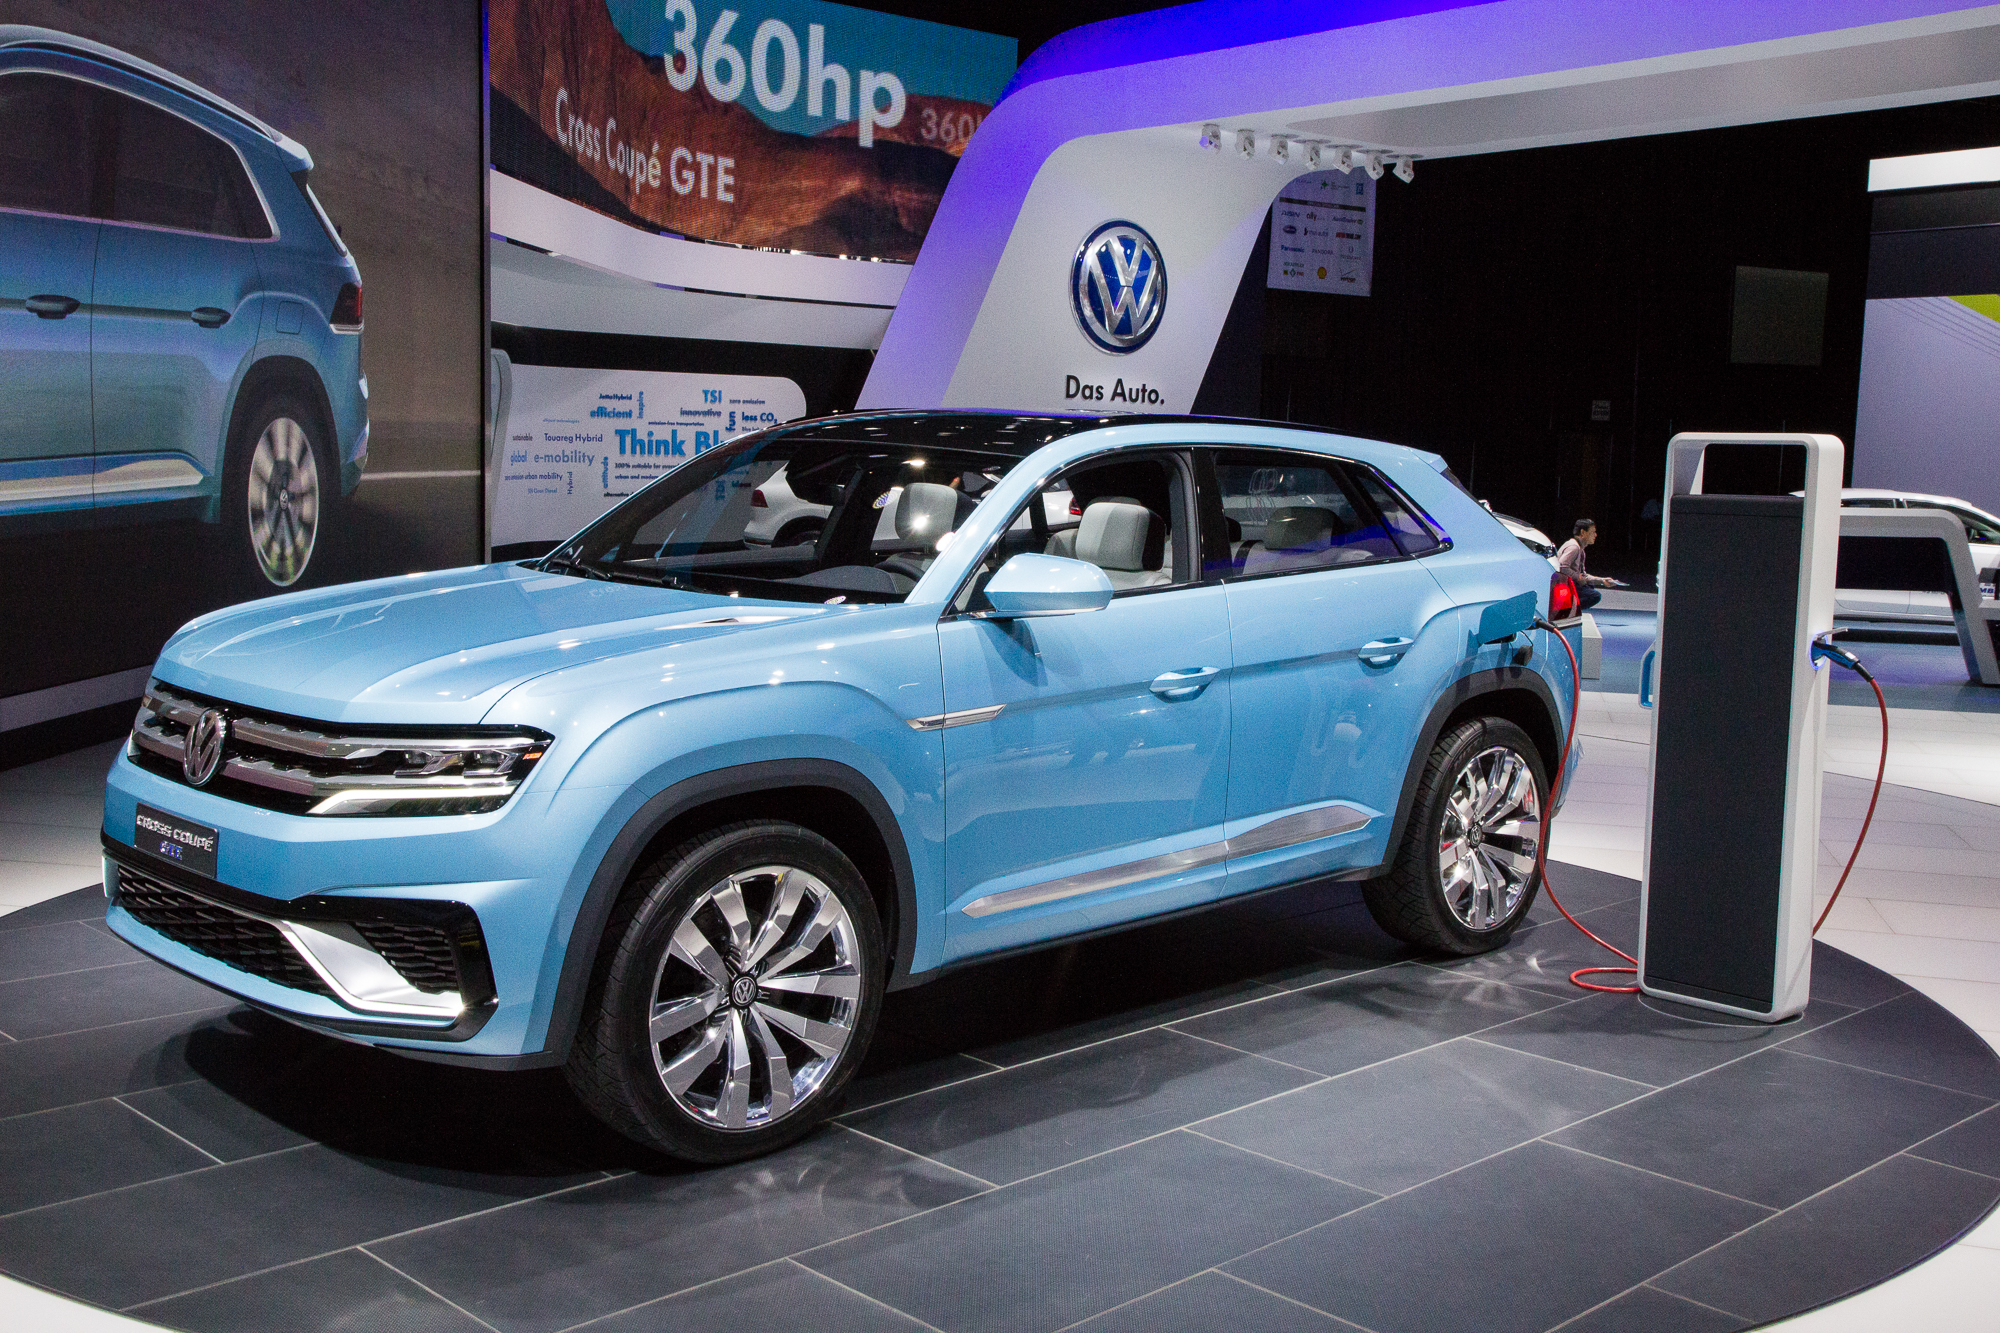 Volkswagen Cross Coupe Plug-In Hybrid Concept: Mid-Size SUV Previewed ...